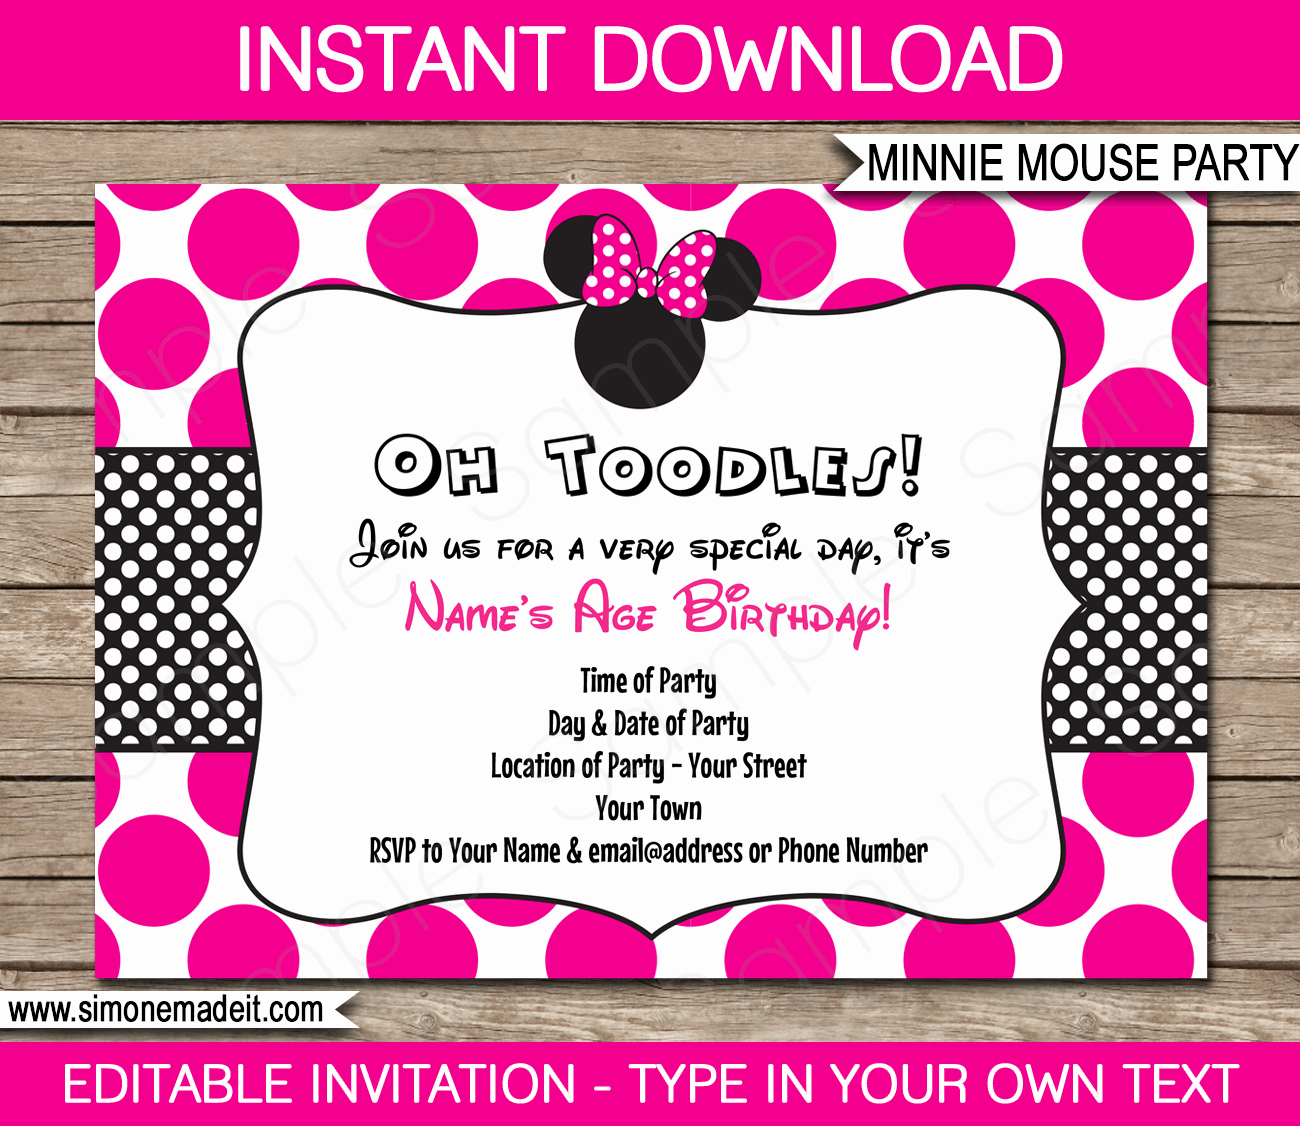 Free Minnie Mouse Invitation Template Awesome Minnie Mouse Party Invitations Template